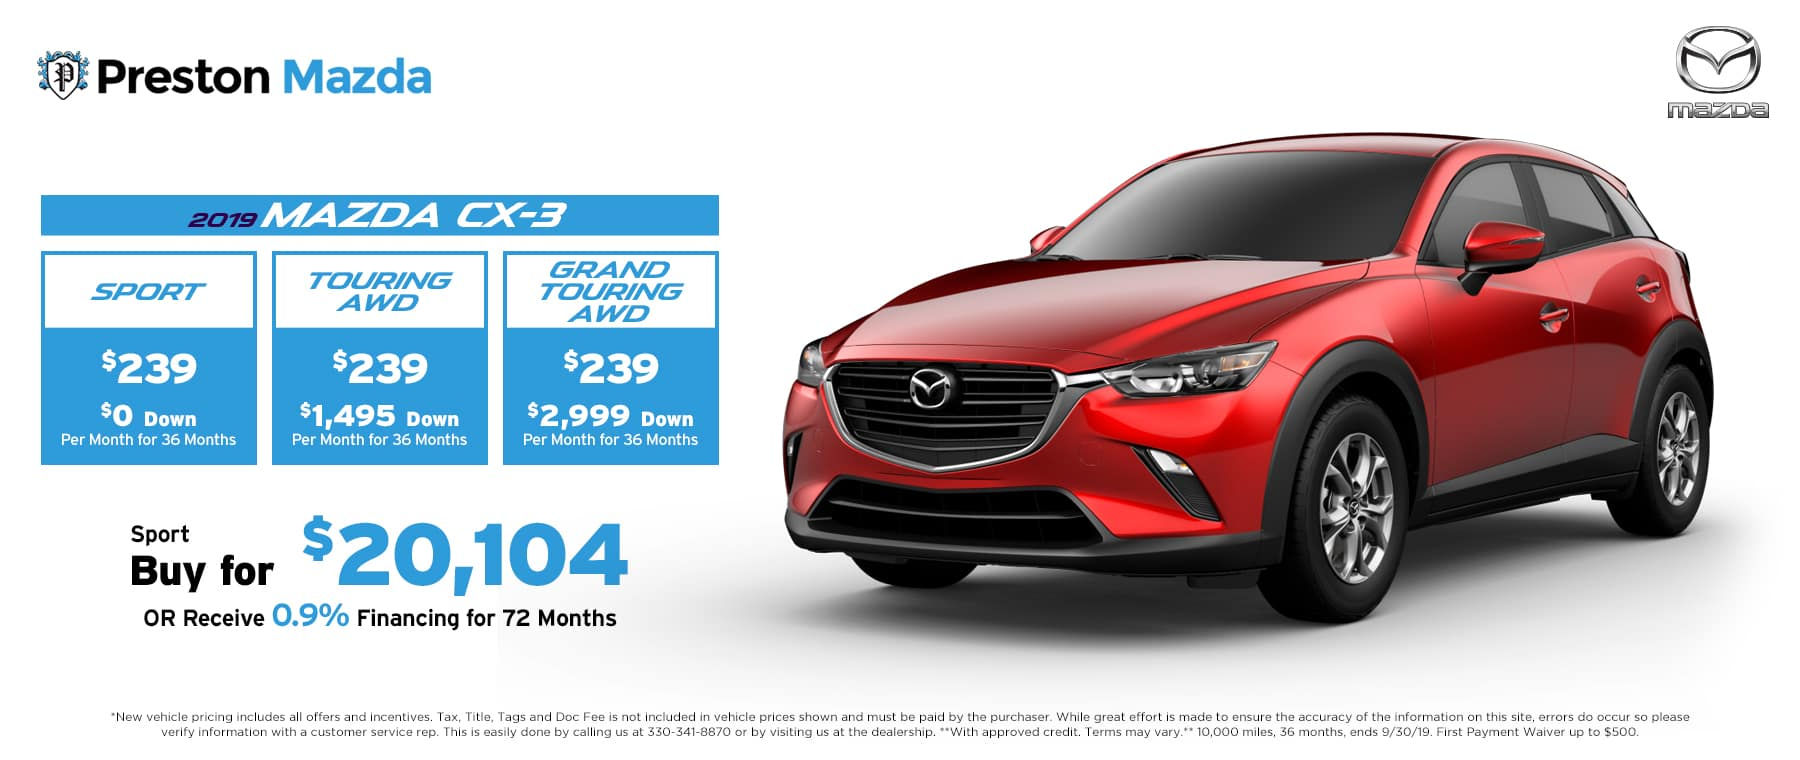 September special on the Mazda CX-3